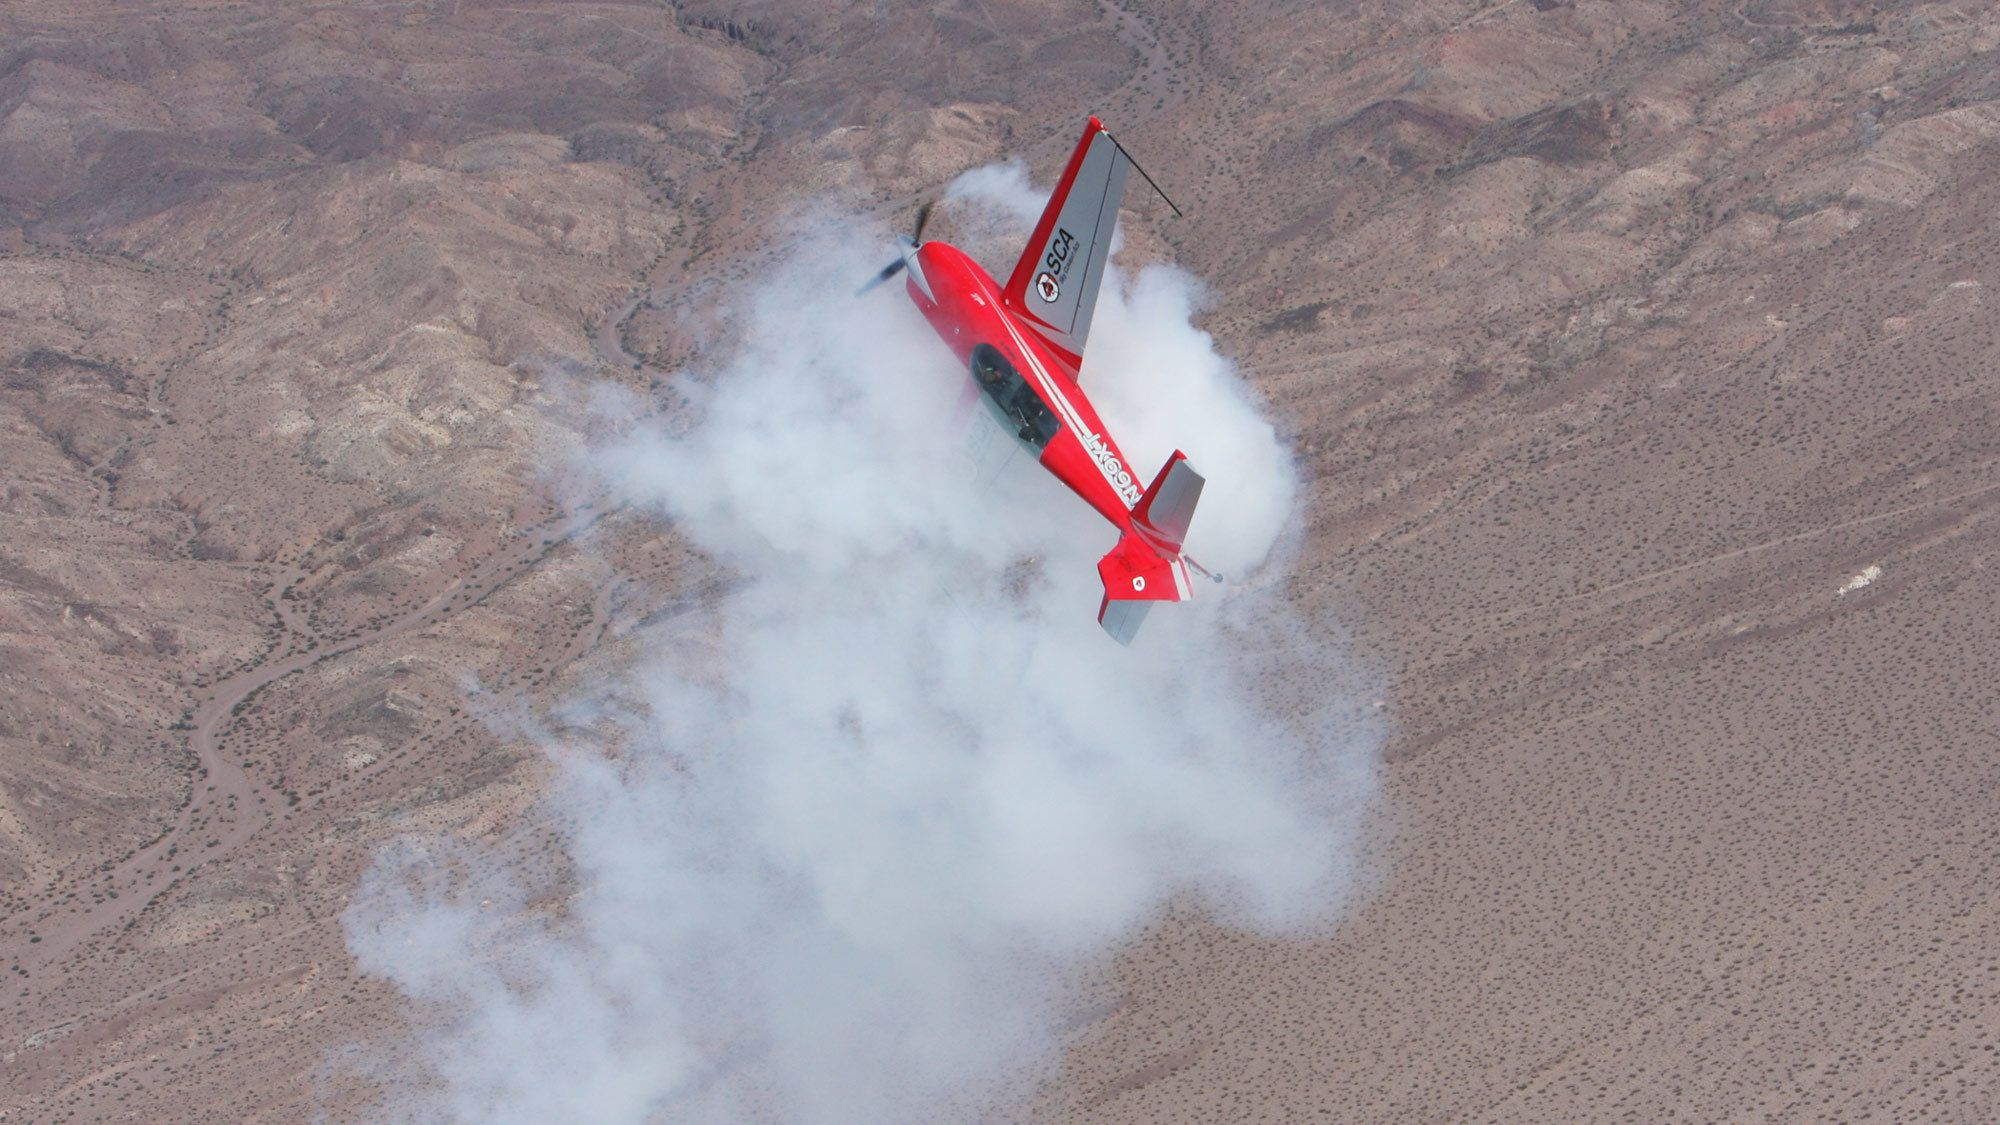 red plane performing a spiraling maneuver in San Diego